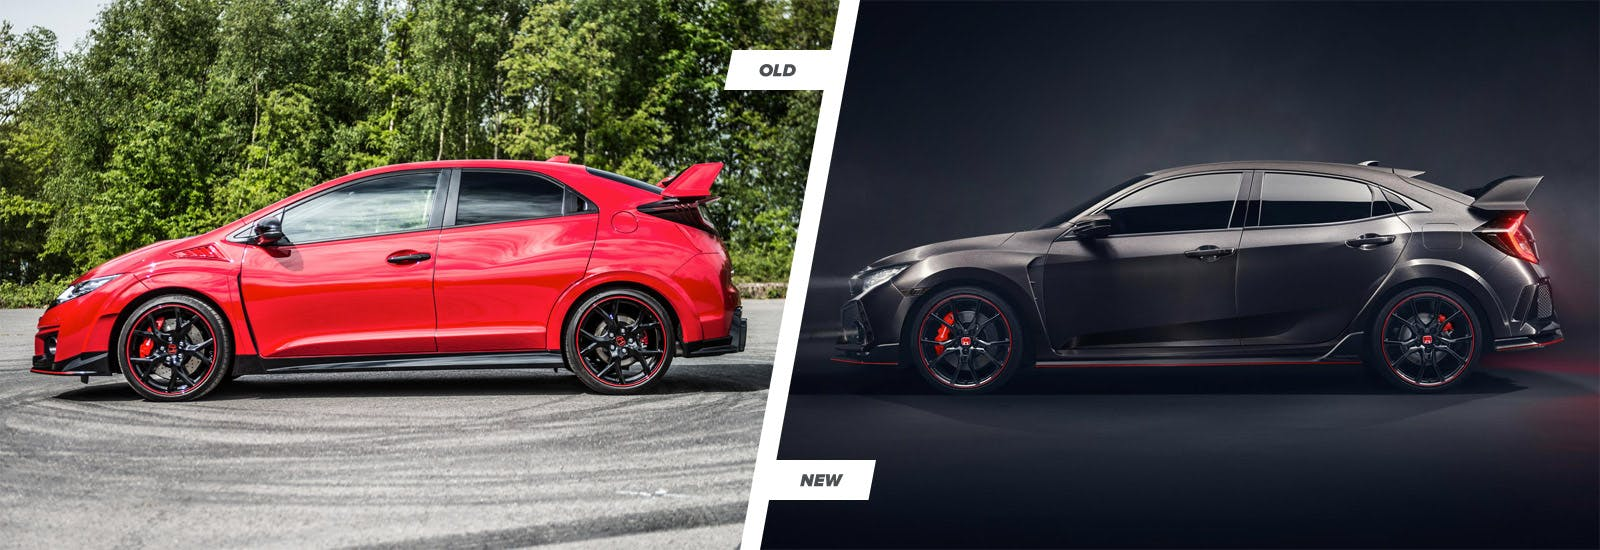 Honda civic type r new vs old compared carwow for Honda fit vs honda civic